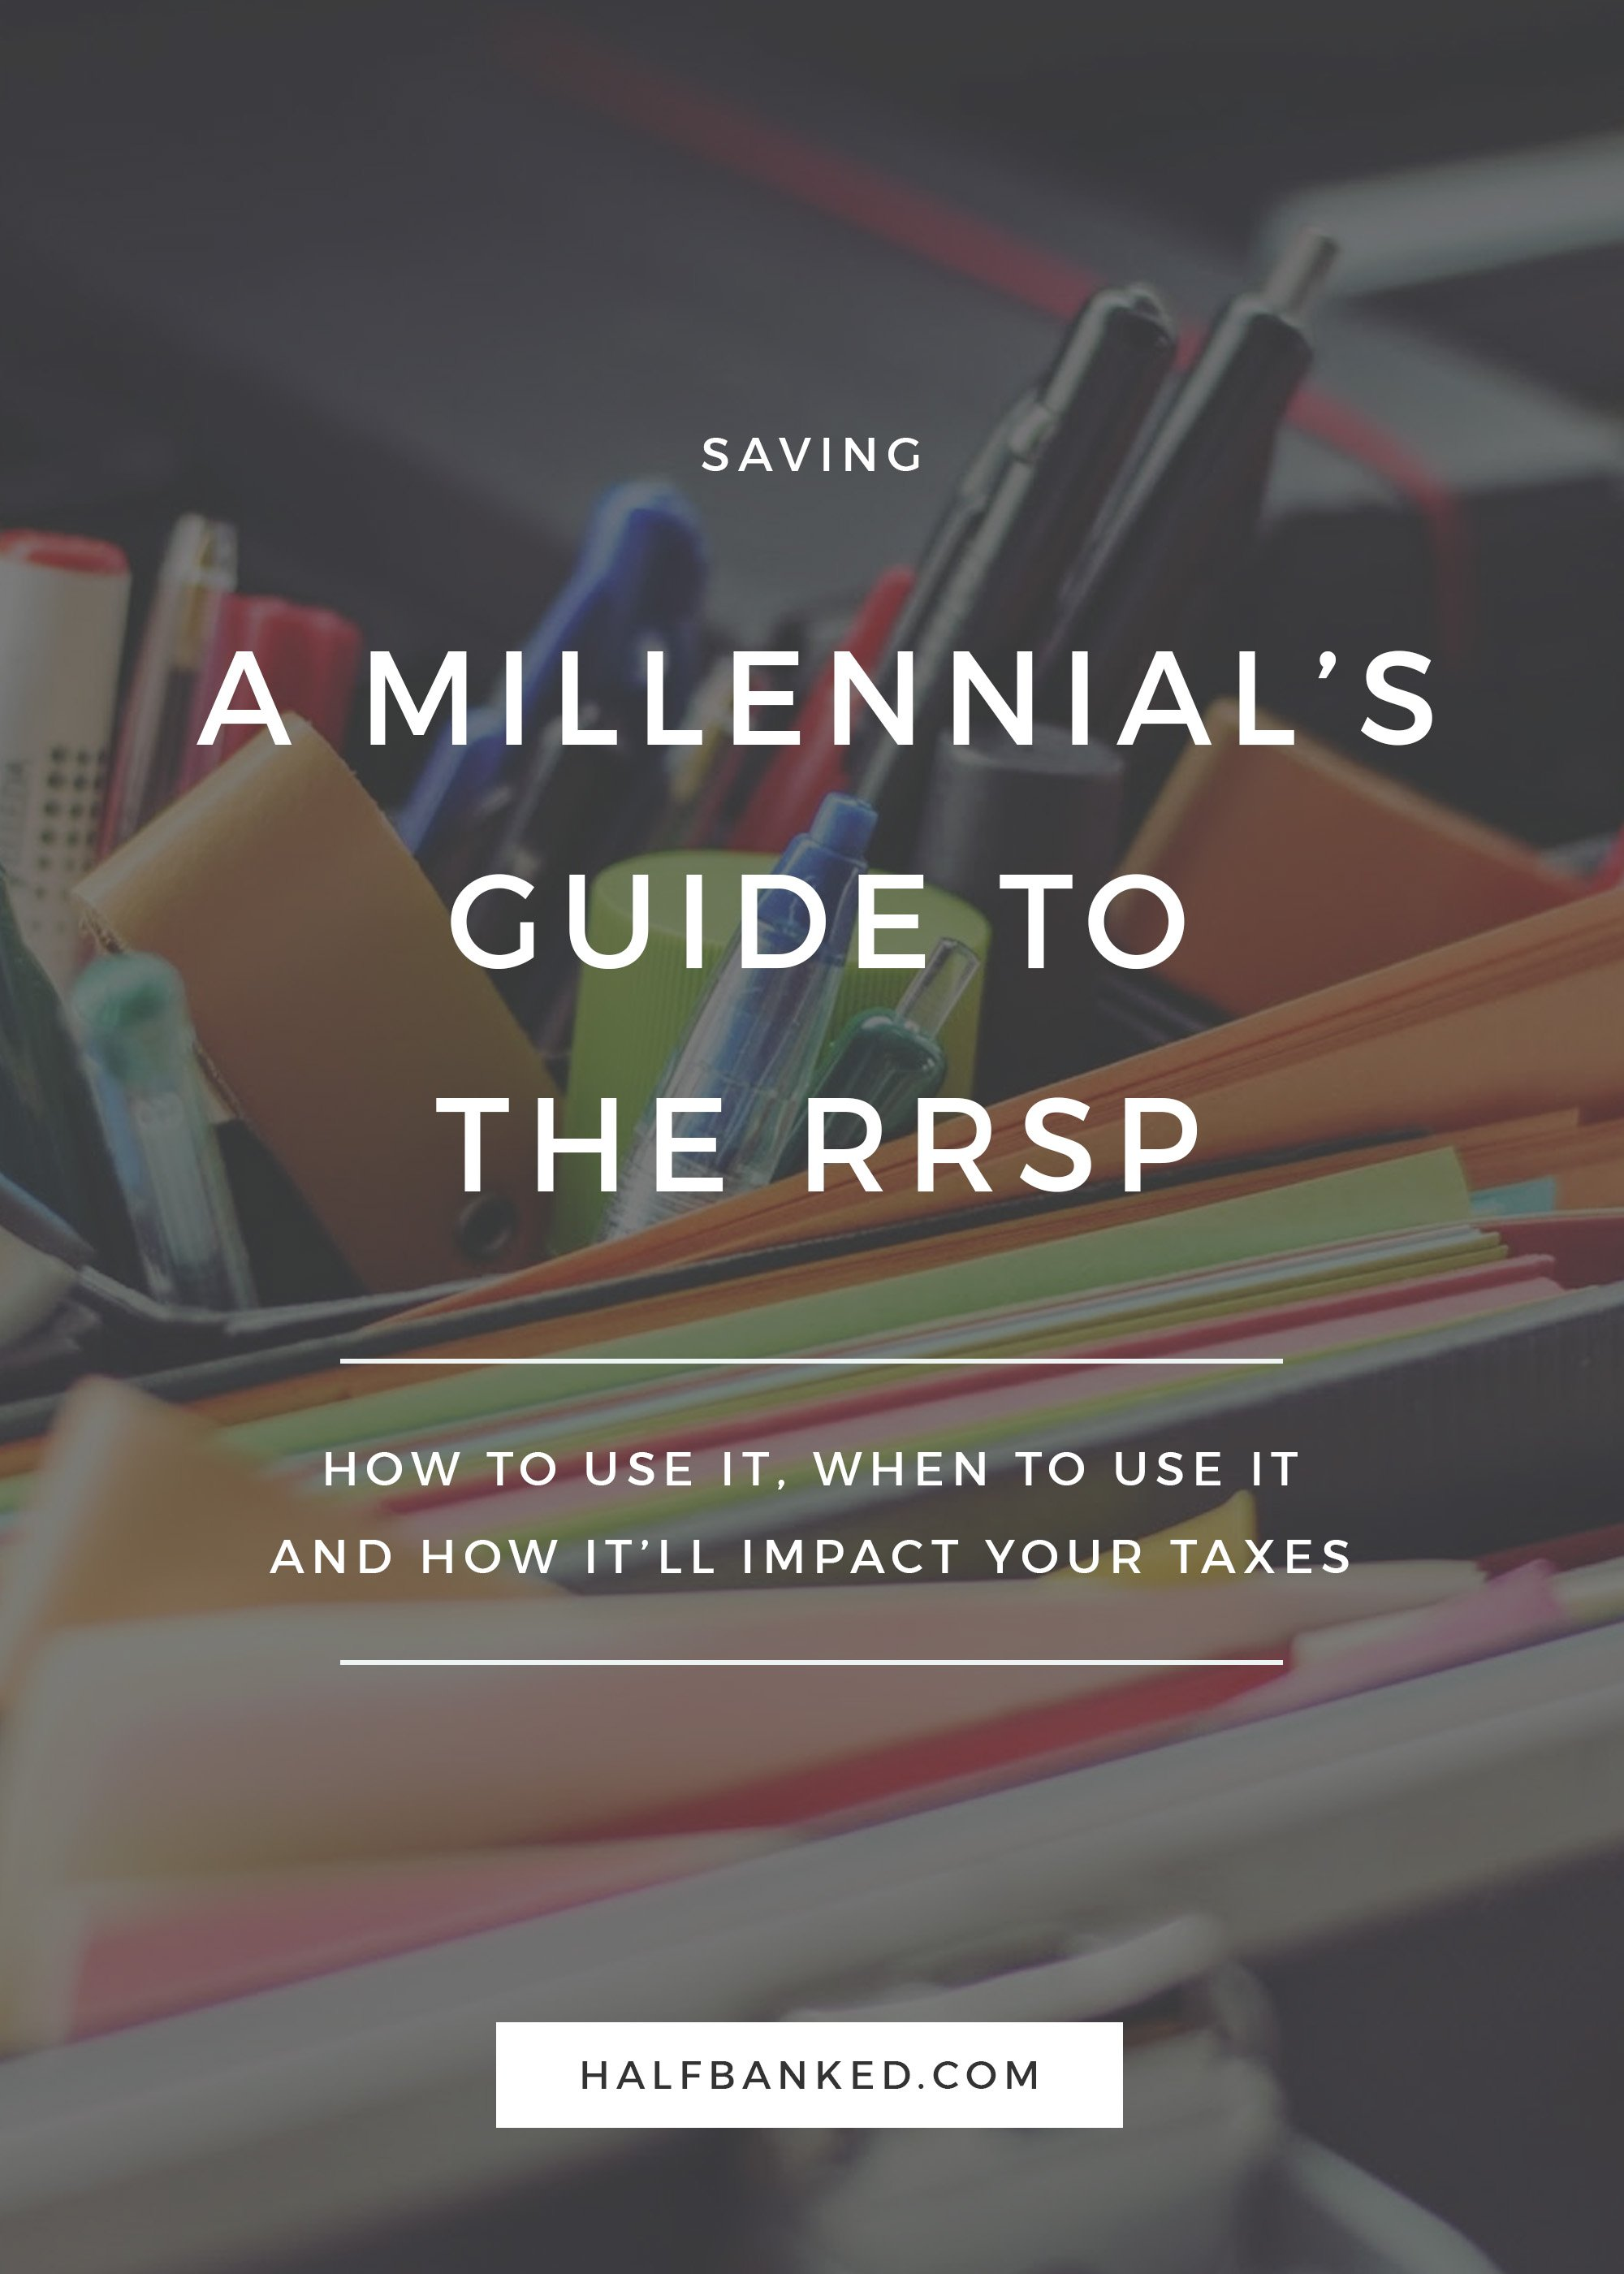 If you're a millennial who wants to learn more about how the RRSP can help you save for retirement, and how to use it, this is the post for you!